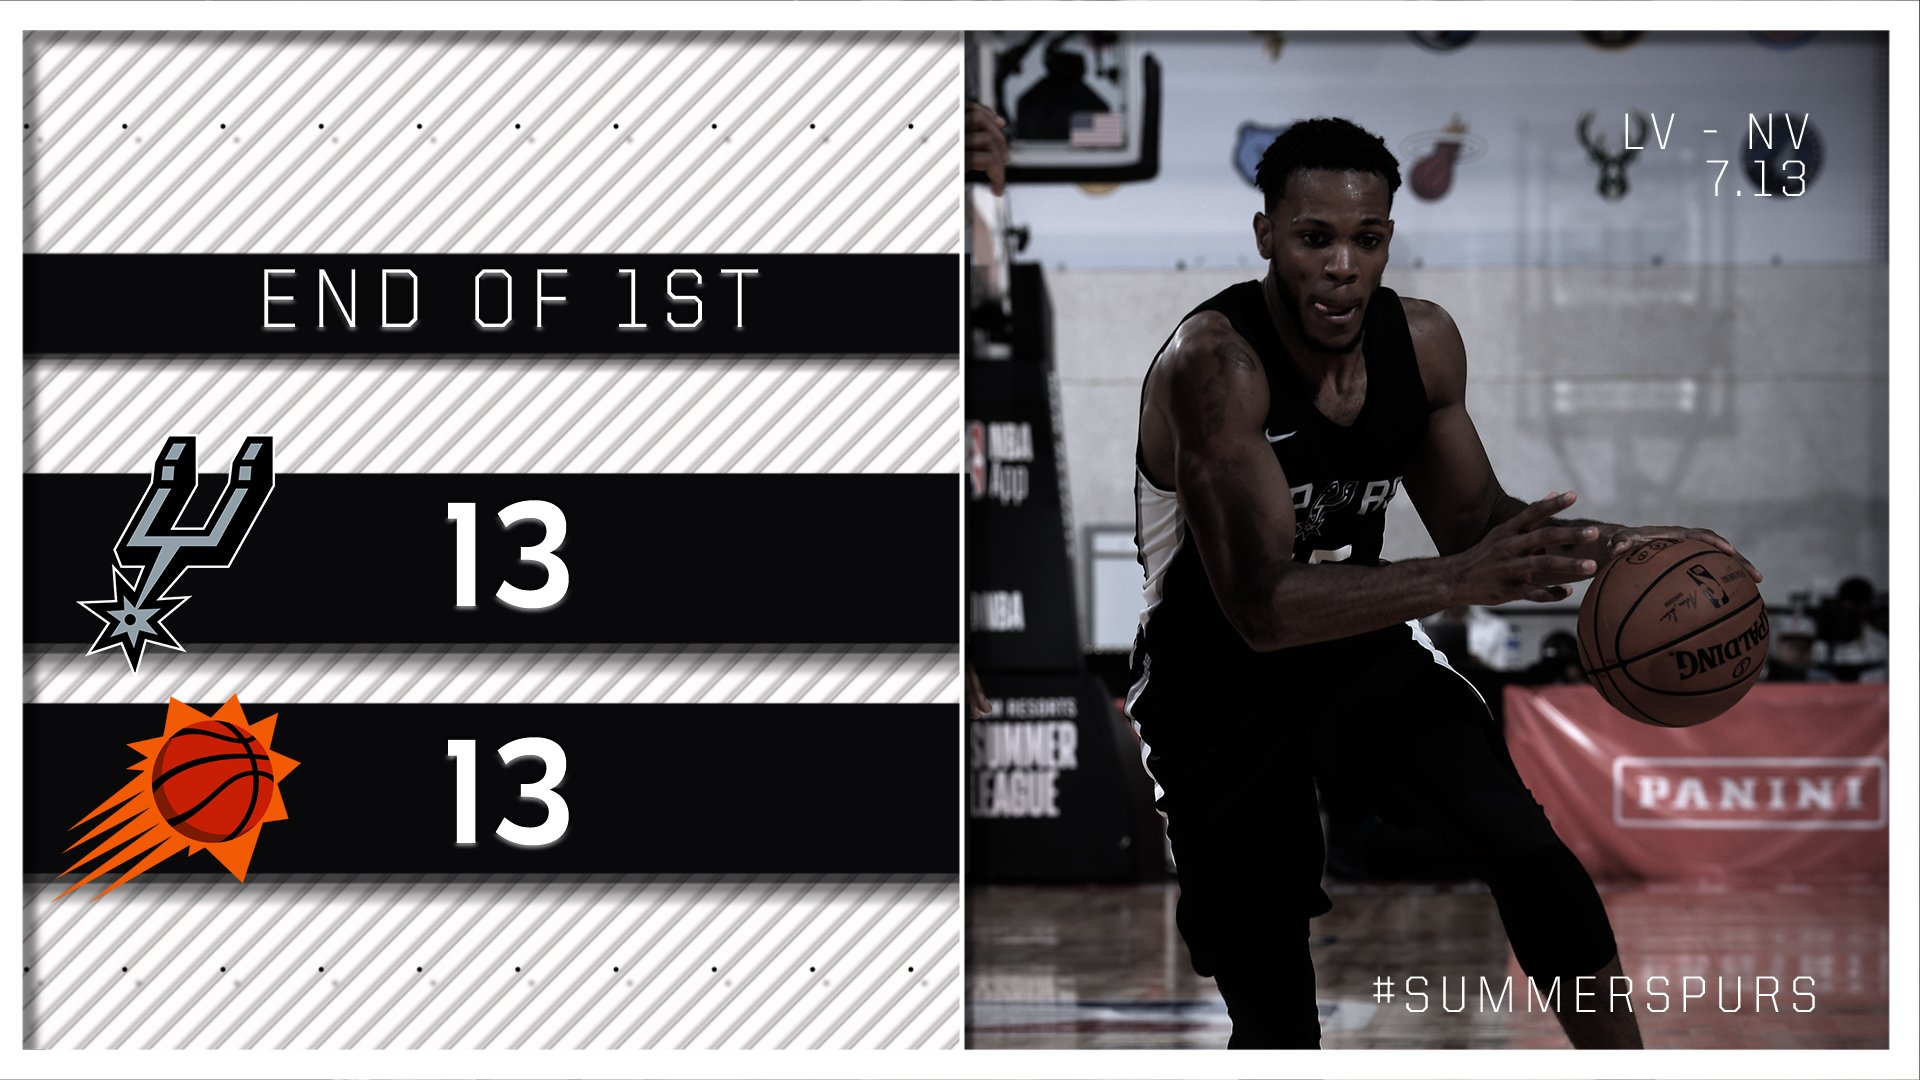 End of one.  #SummerSpurs https://t.co/yvUD6waZEE